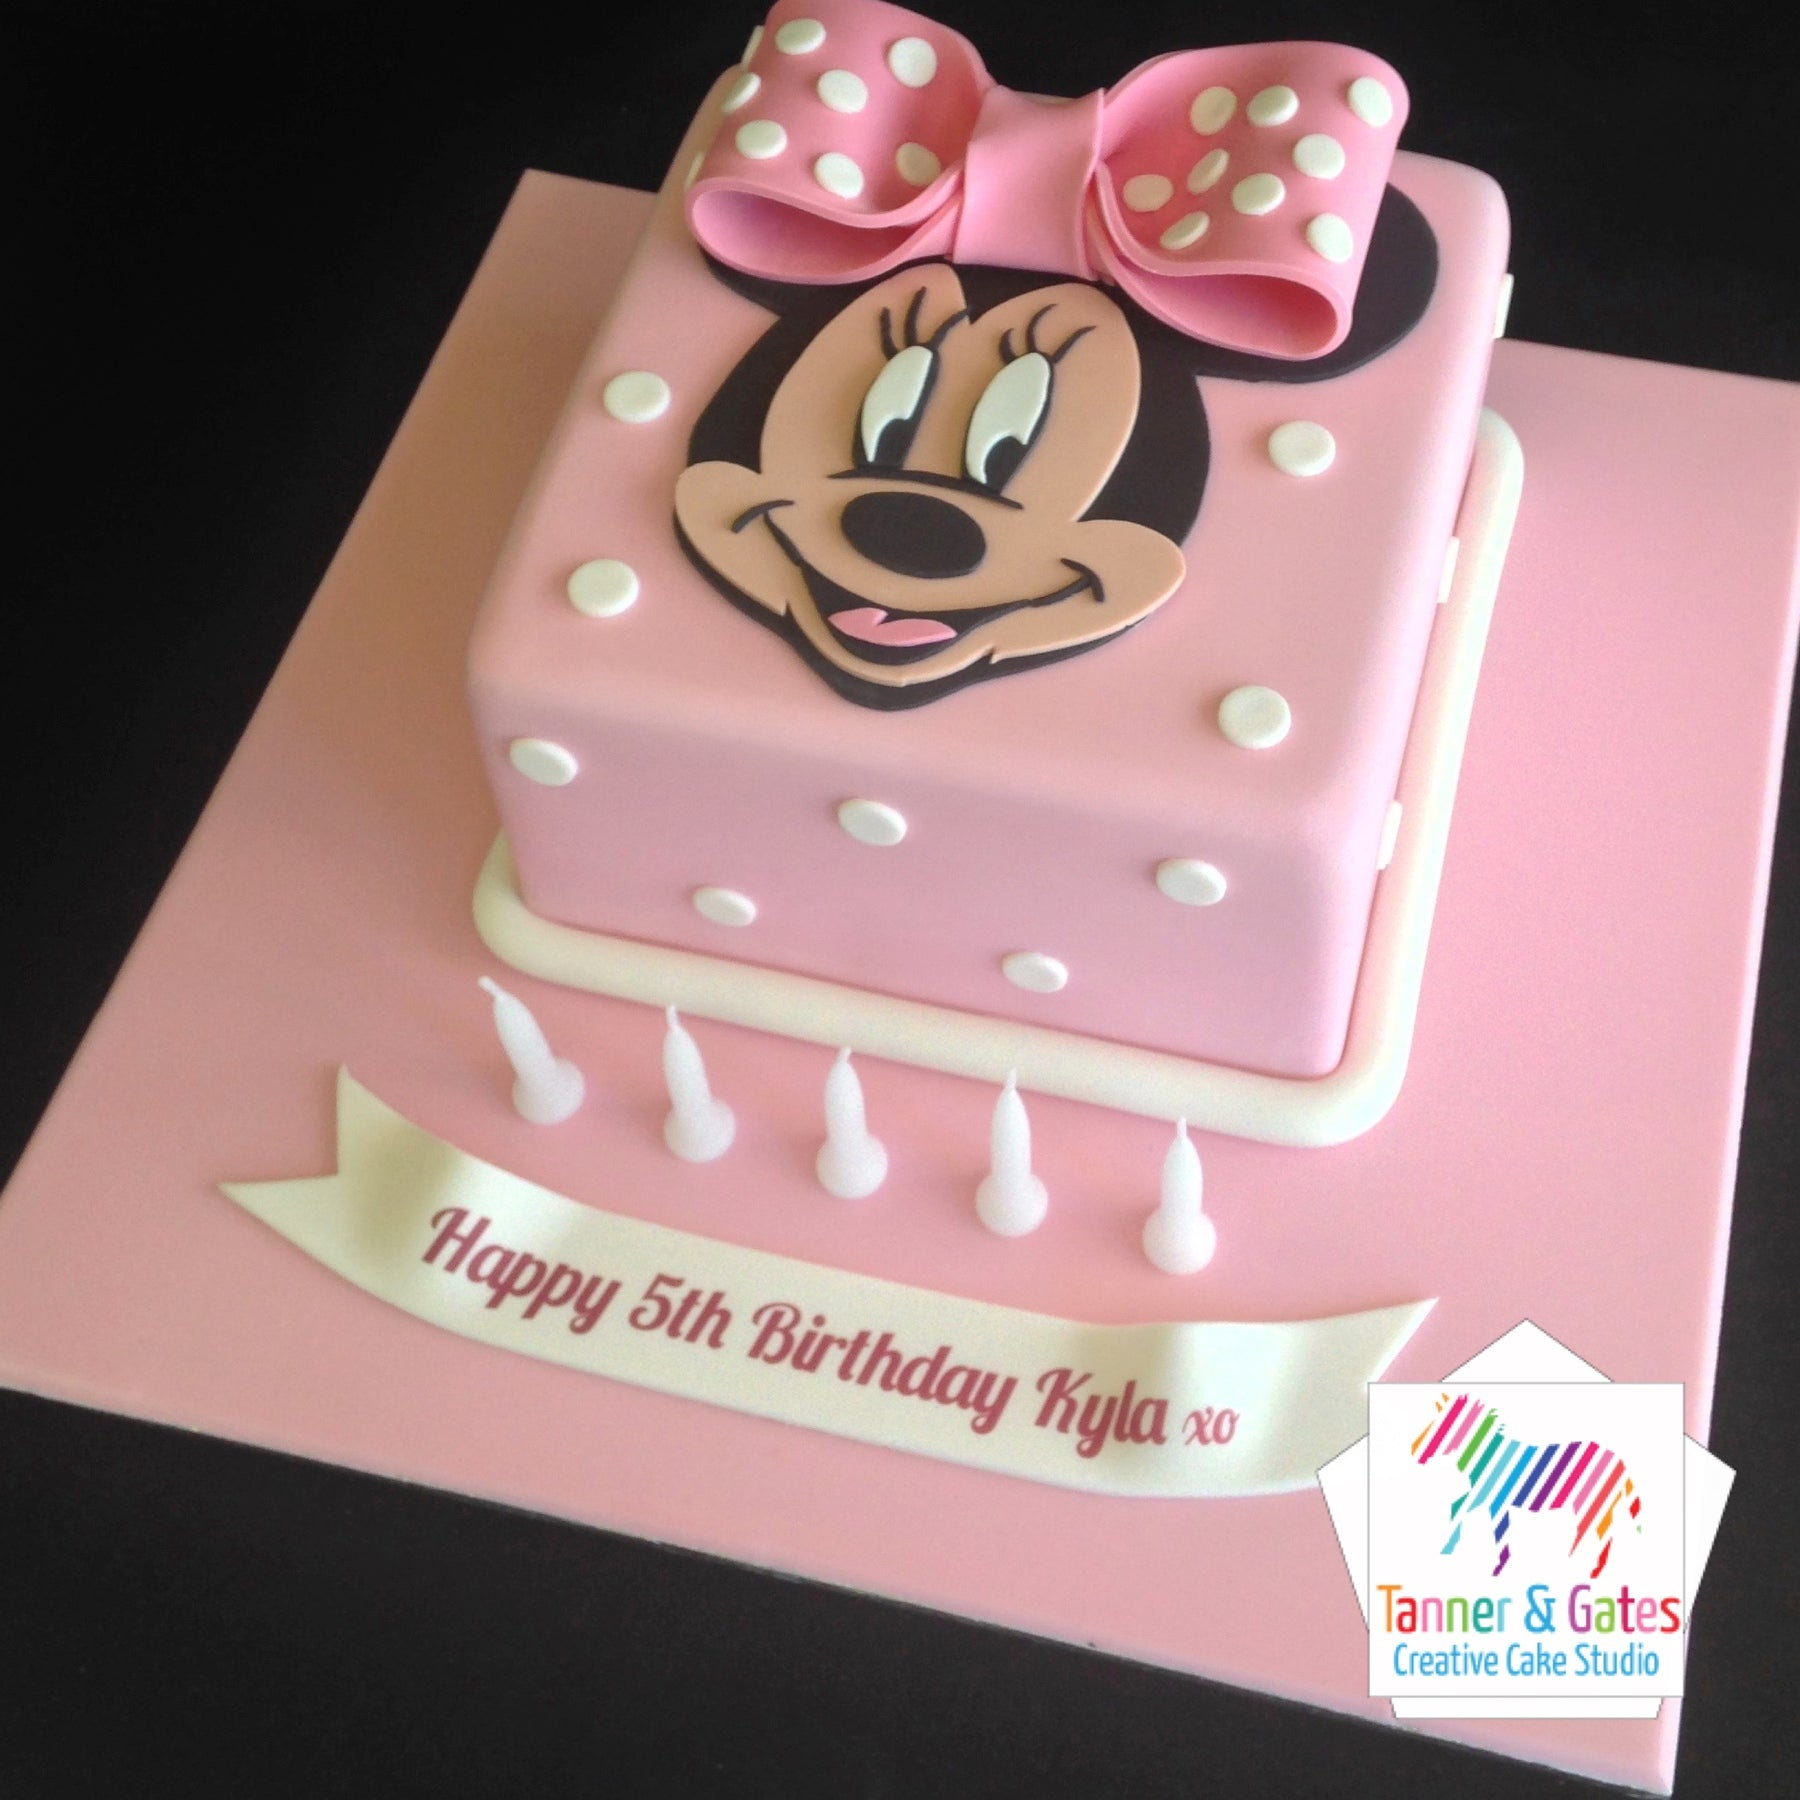 Astounding Minnie Mouse Birthday Cake Tanner Gates Funny Birthday Cards Online Overcheapnameinfo